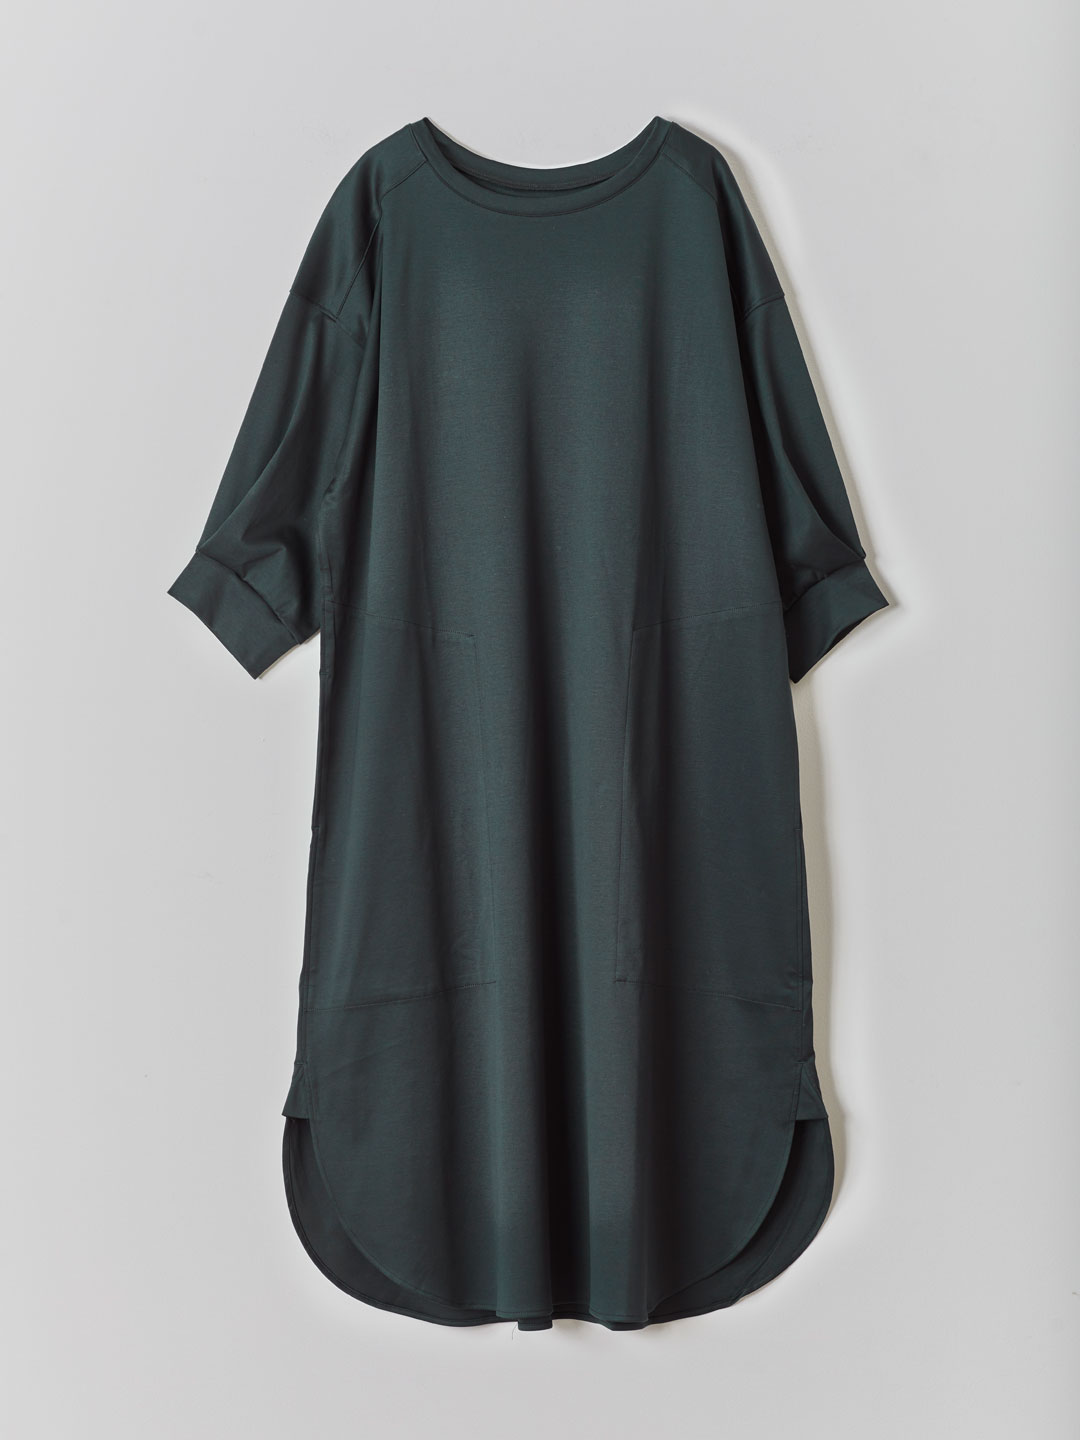 Tee Shirts Dress  - Green